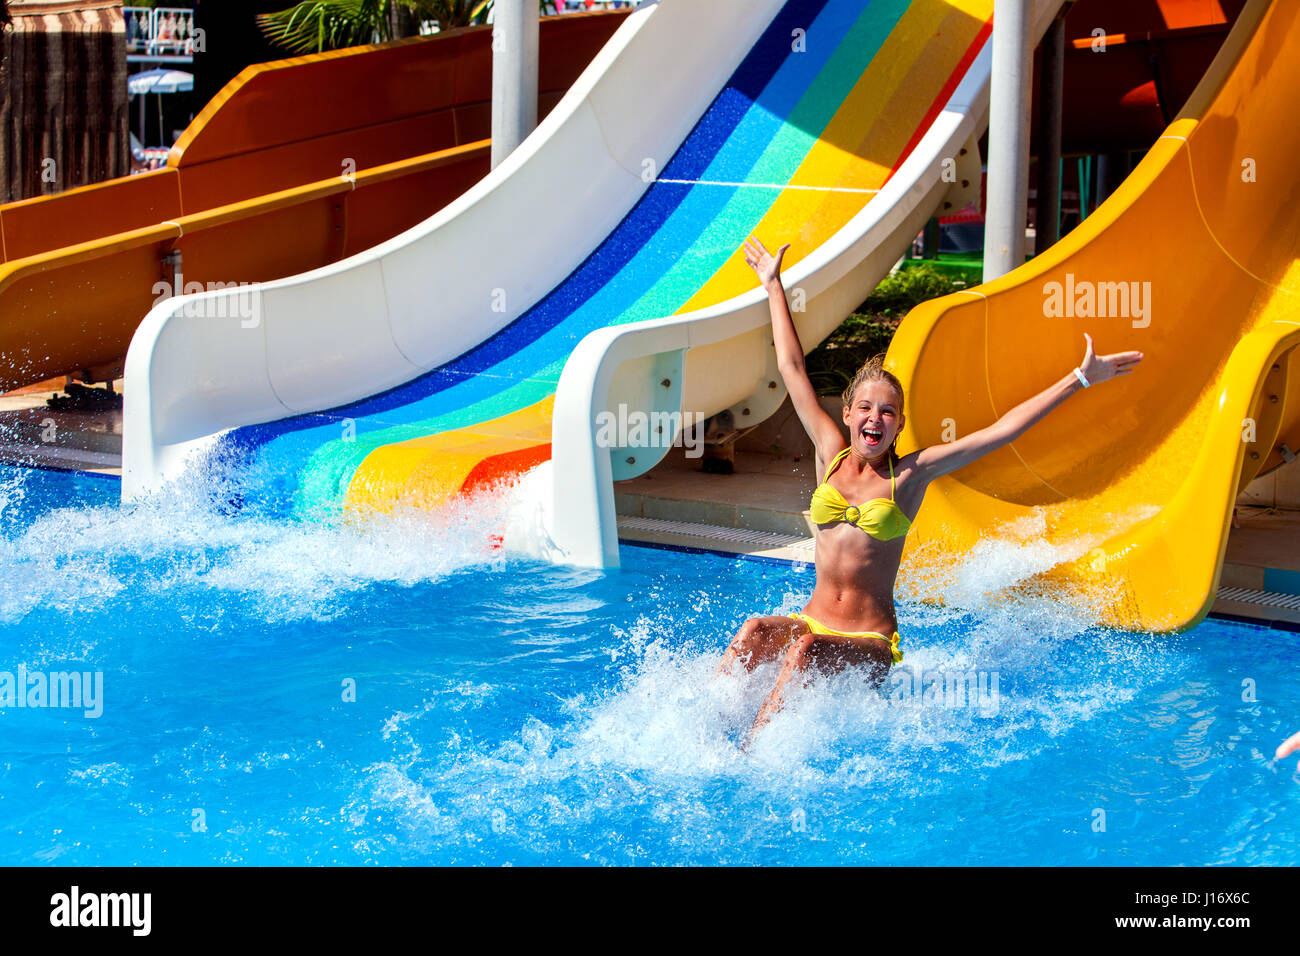 Swimming Pool Slides For Children On Water Slide At Aquapark